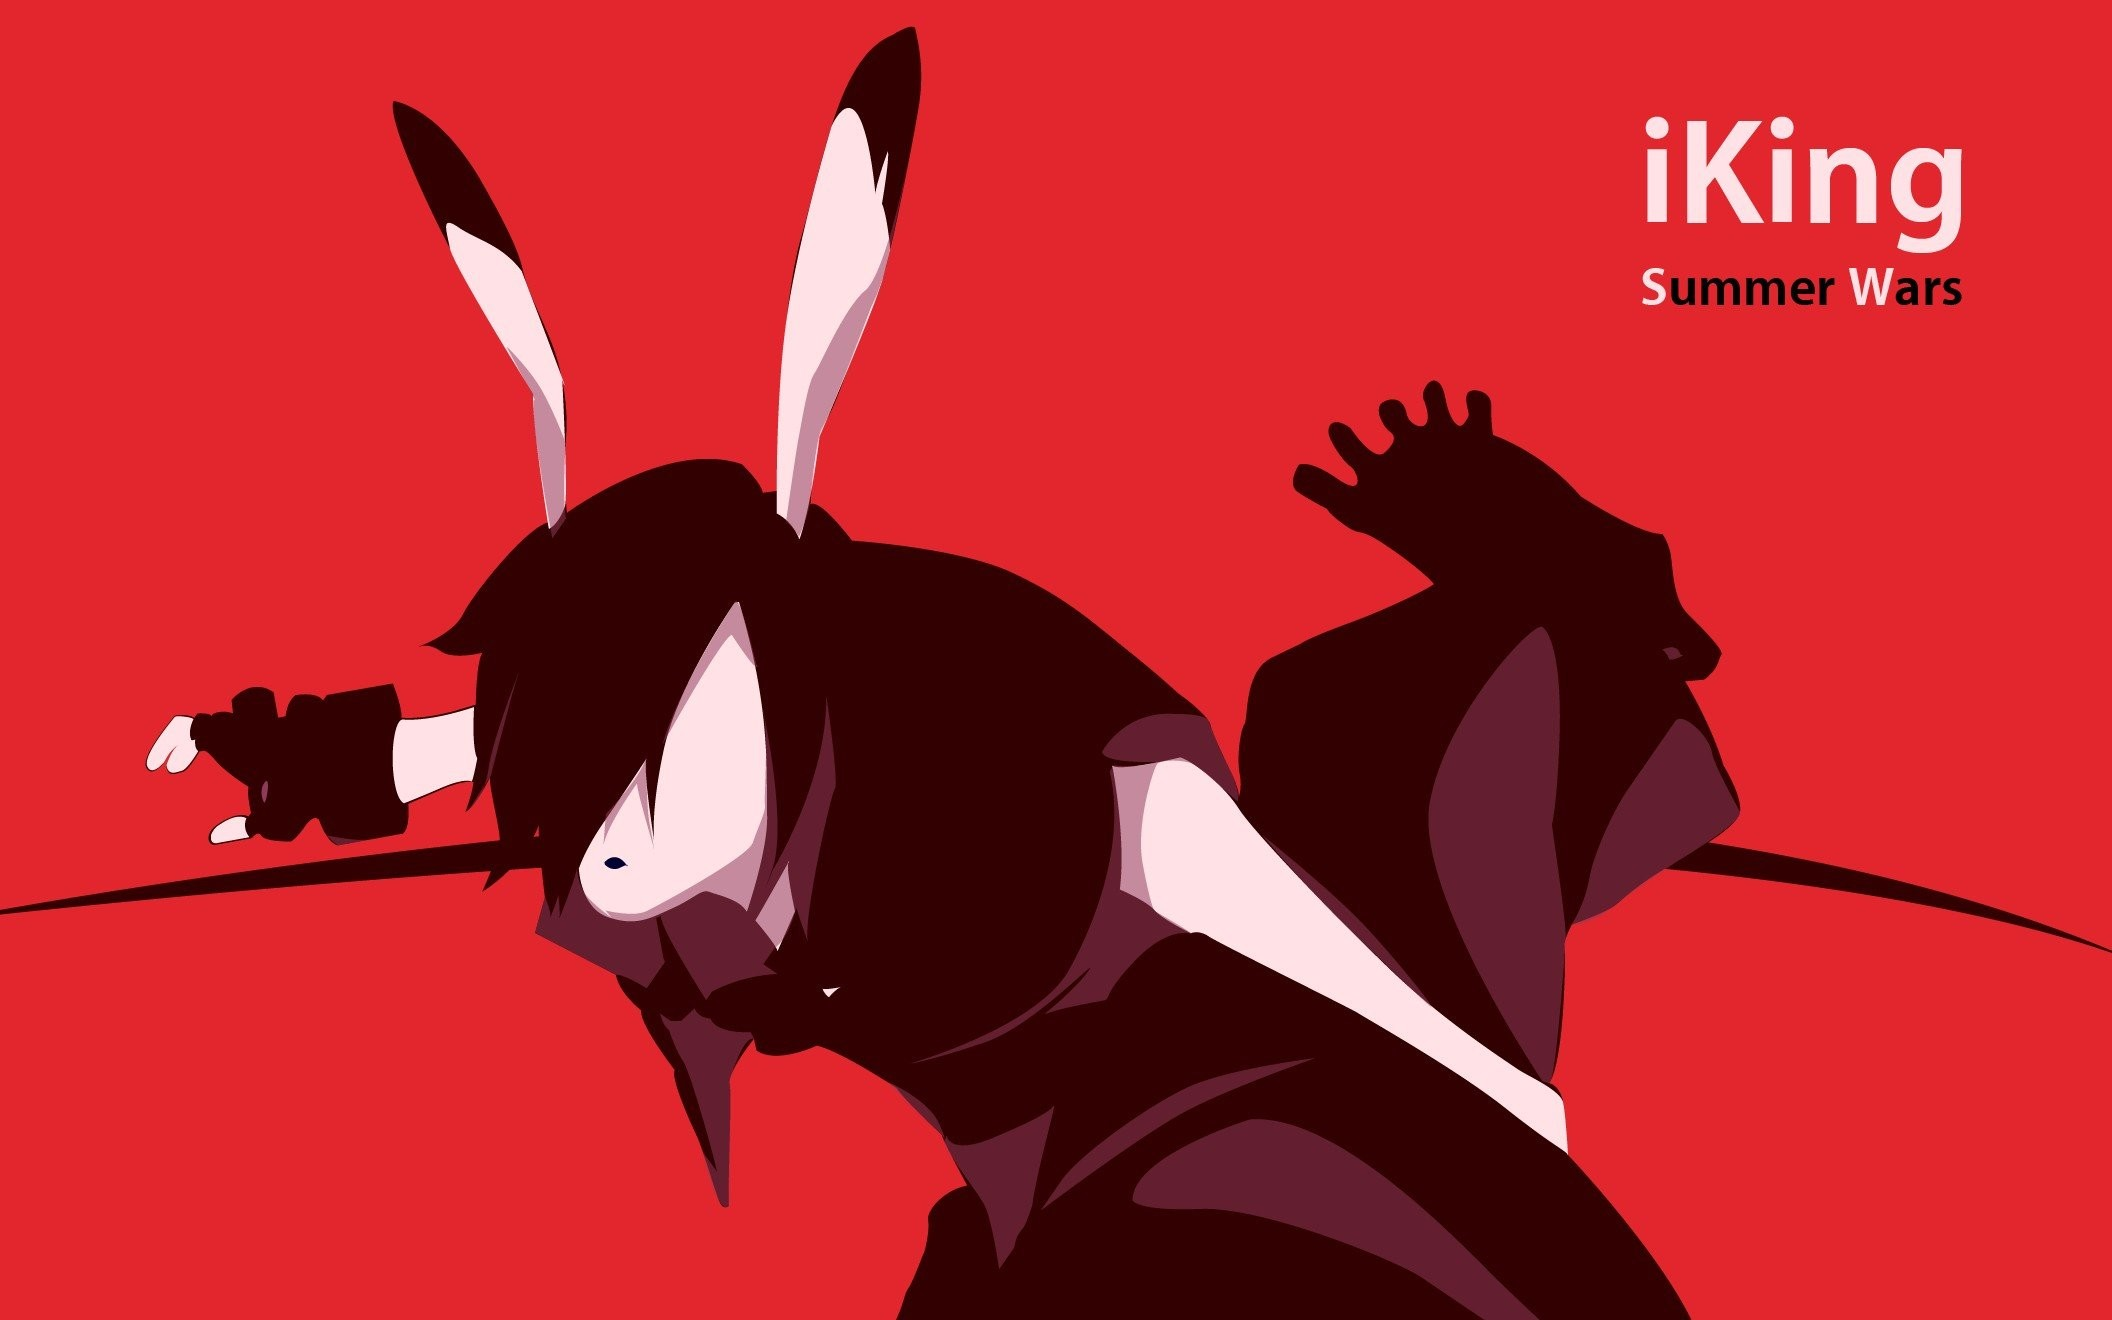 2112x1320 Red gloves iPod silhouettes king parody Summer Wars monochrome anime bunny  ears anime girls wallpaper |  | 253671 | WallpaperUP